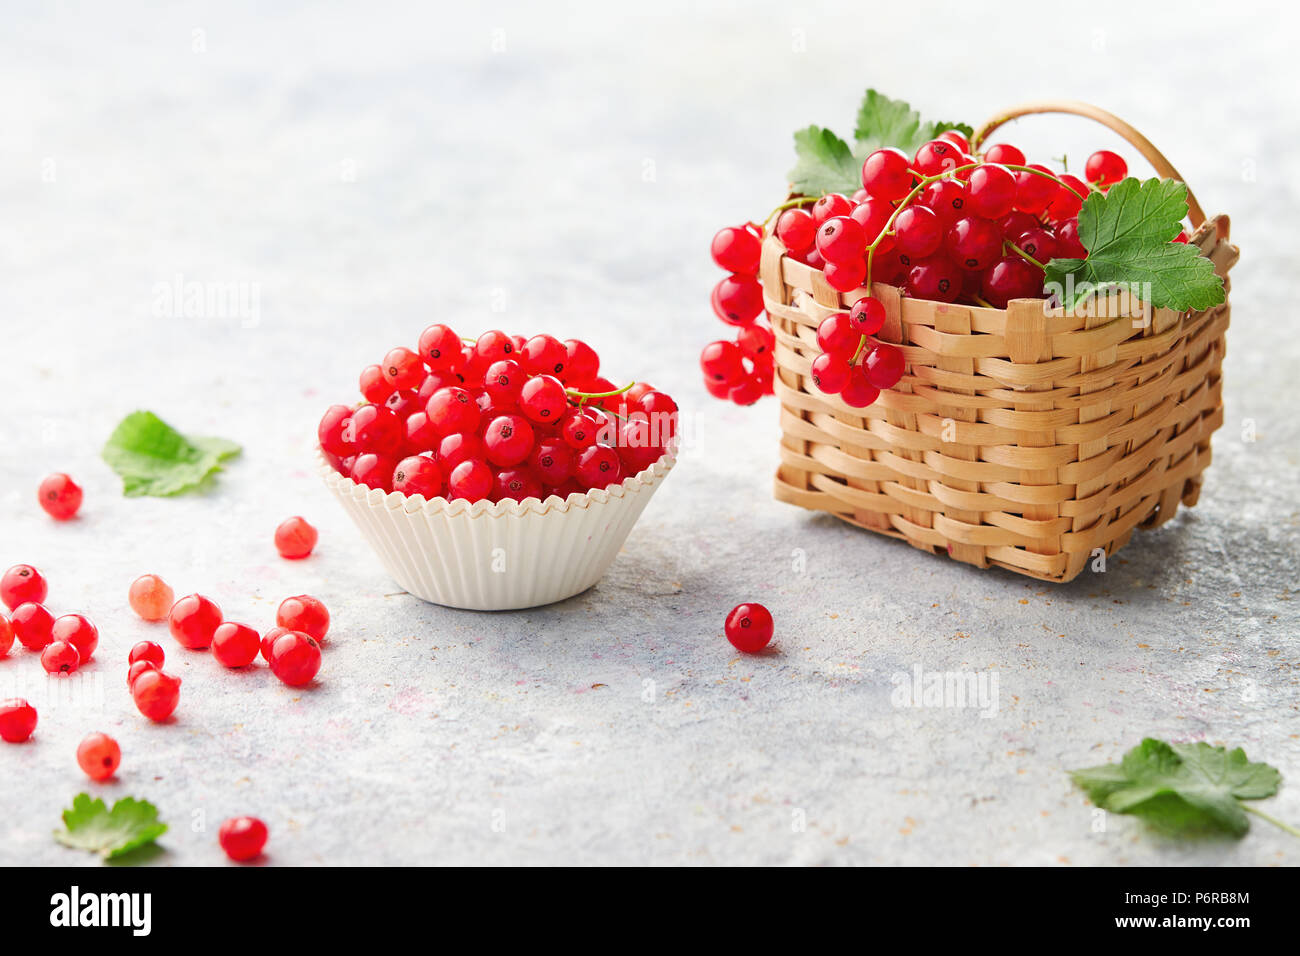 Baking cup and a little wicker basket with fresh red currants (ribes rubrum). Stock Photo